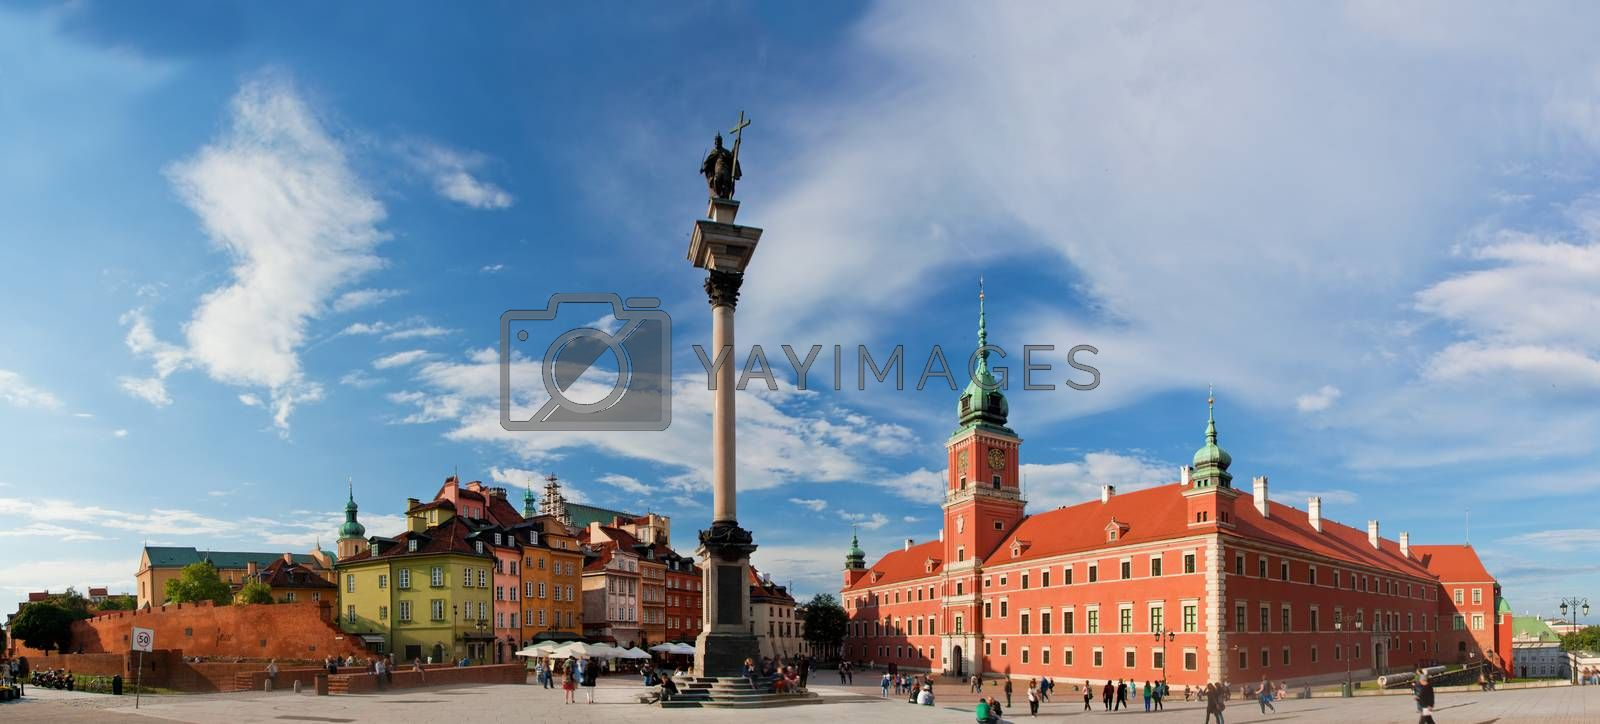 Panorama of the old town in Warsaw, Poland. The Royal Castle and Sigismund's Column called Kolumna Zygmunta